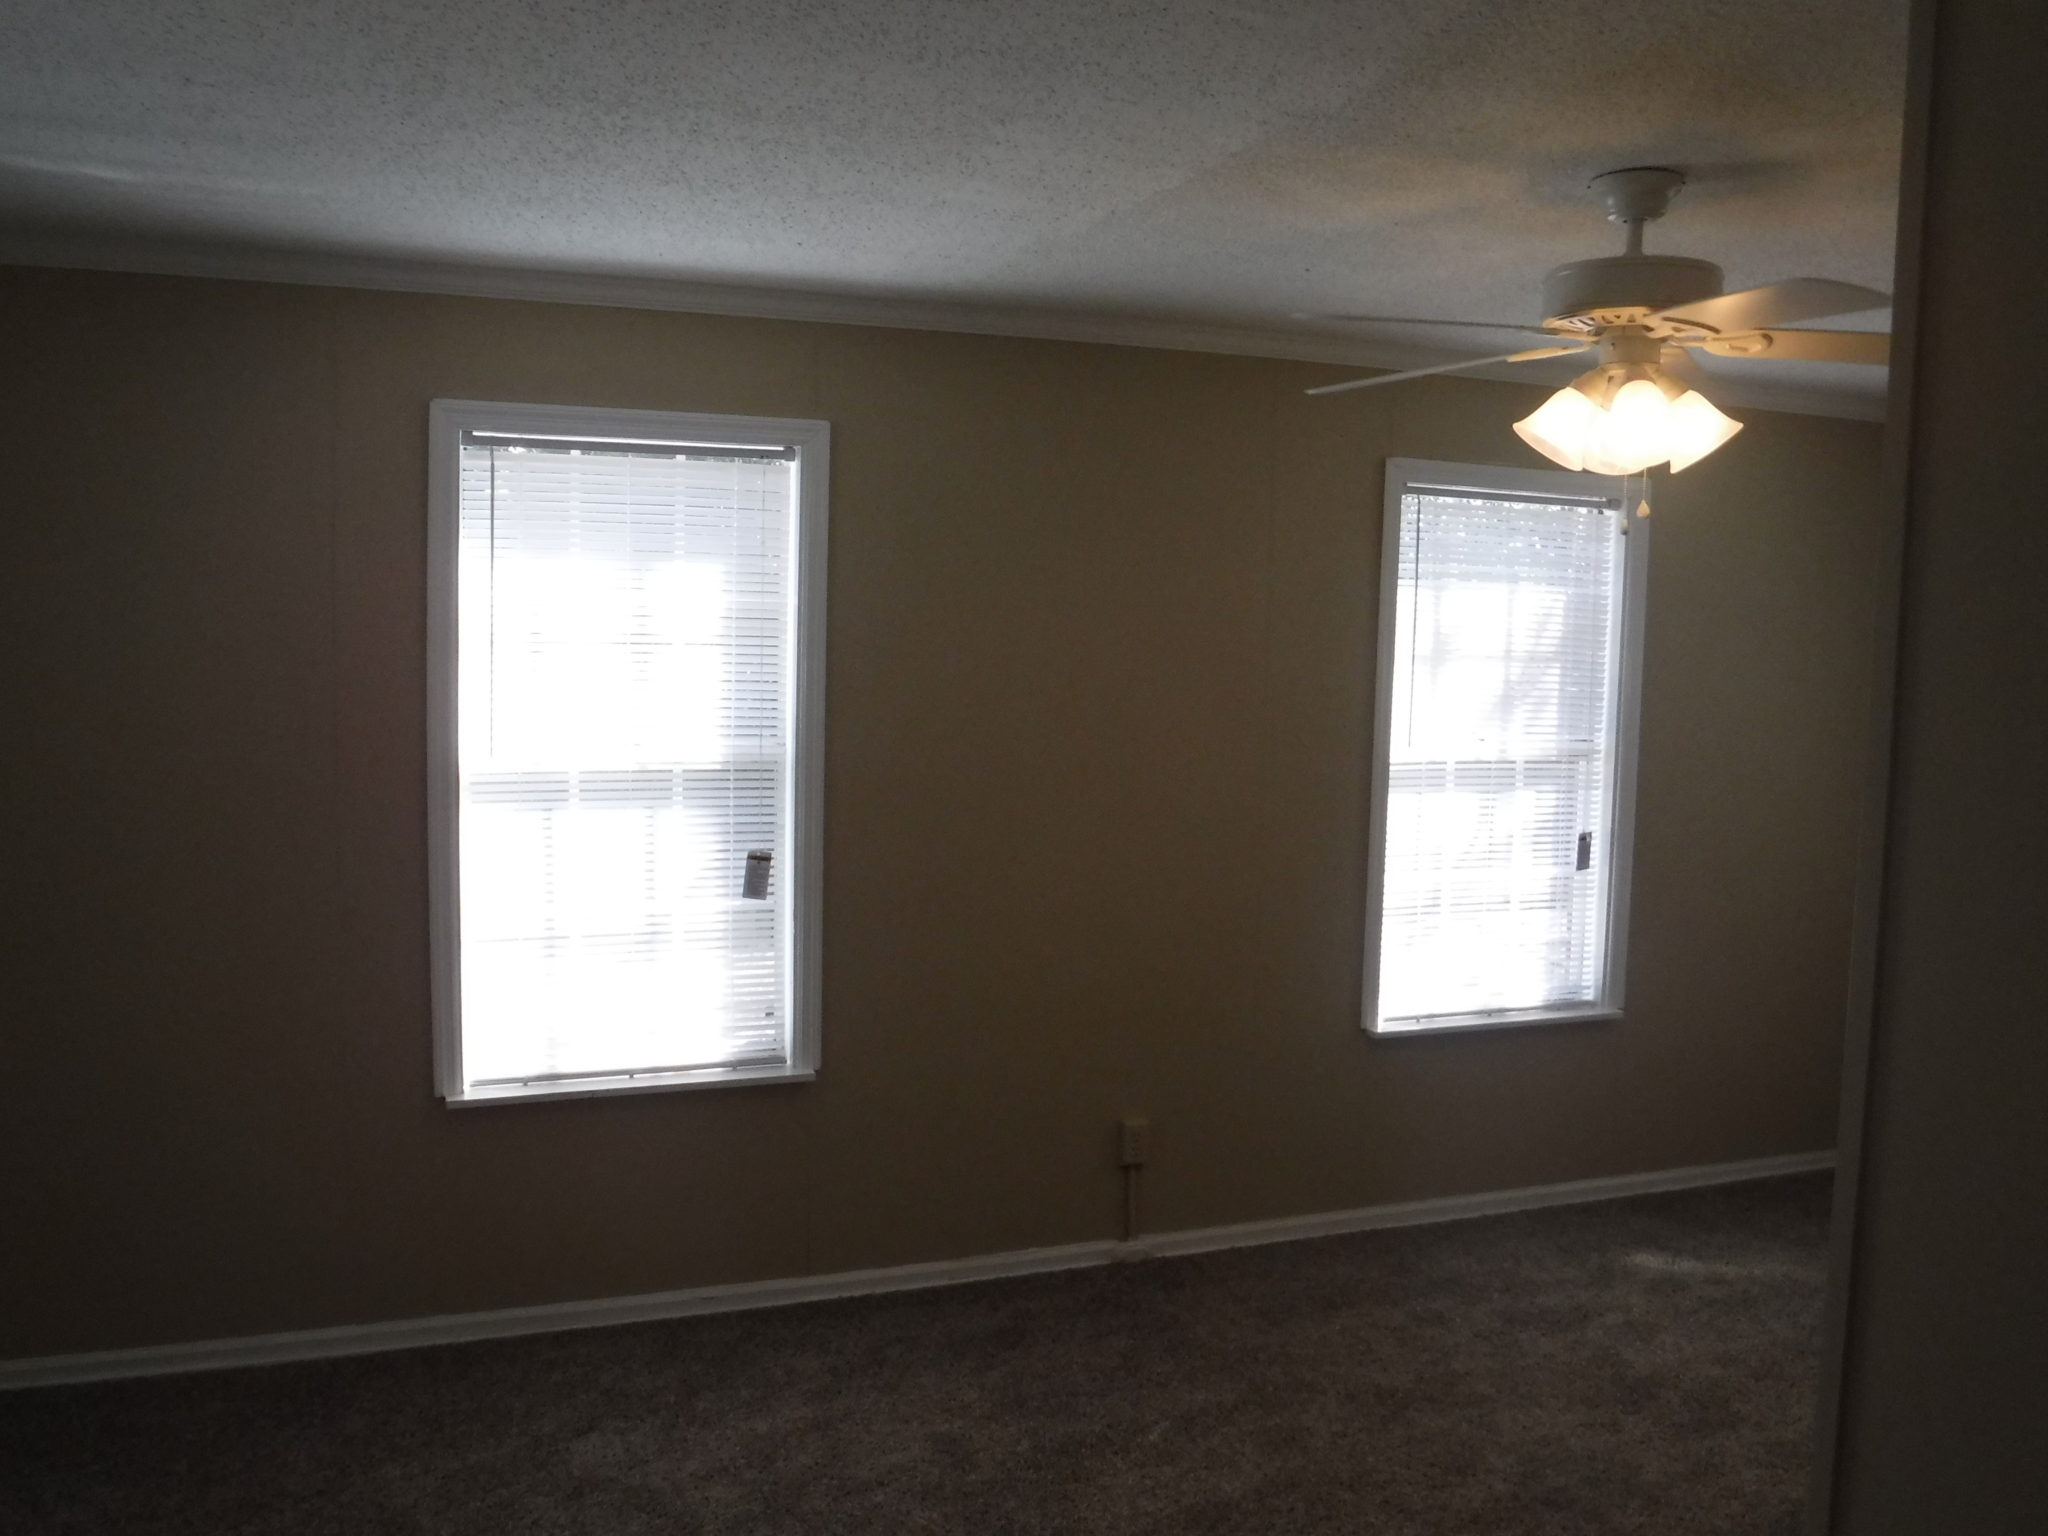 12 X 24 Separate Family Room With New Ceiling Fan And